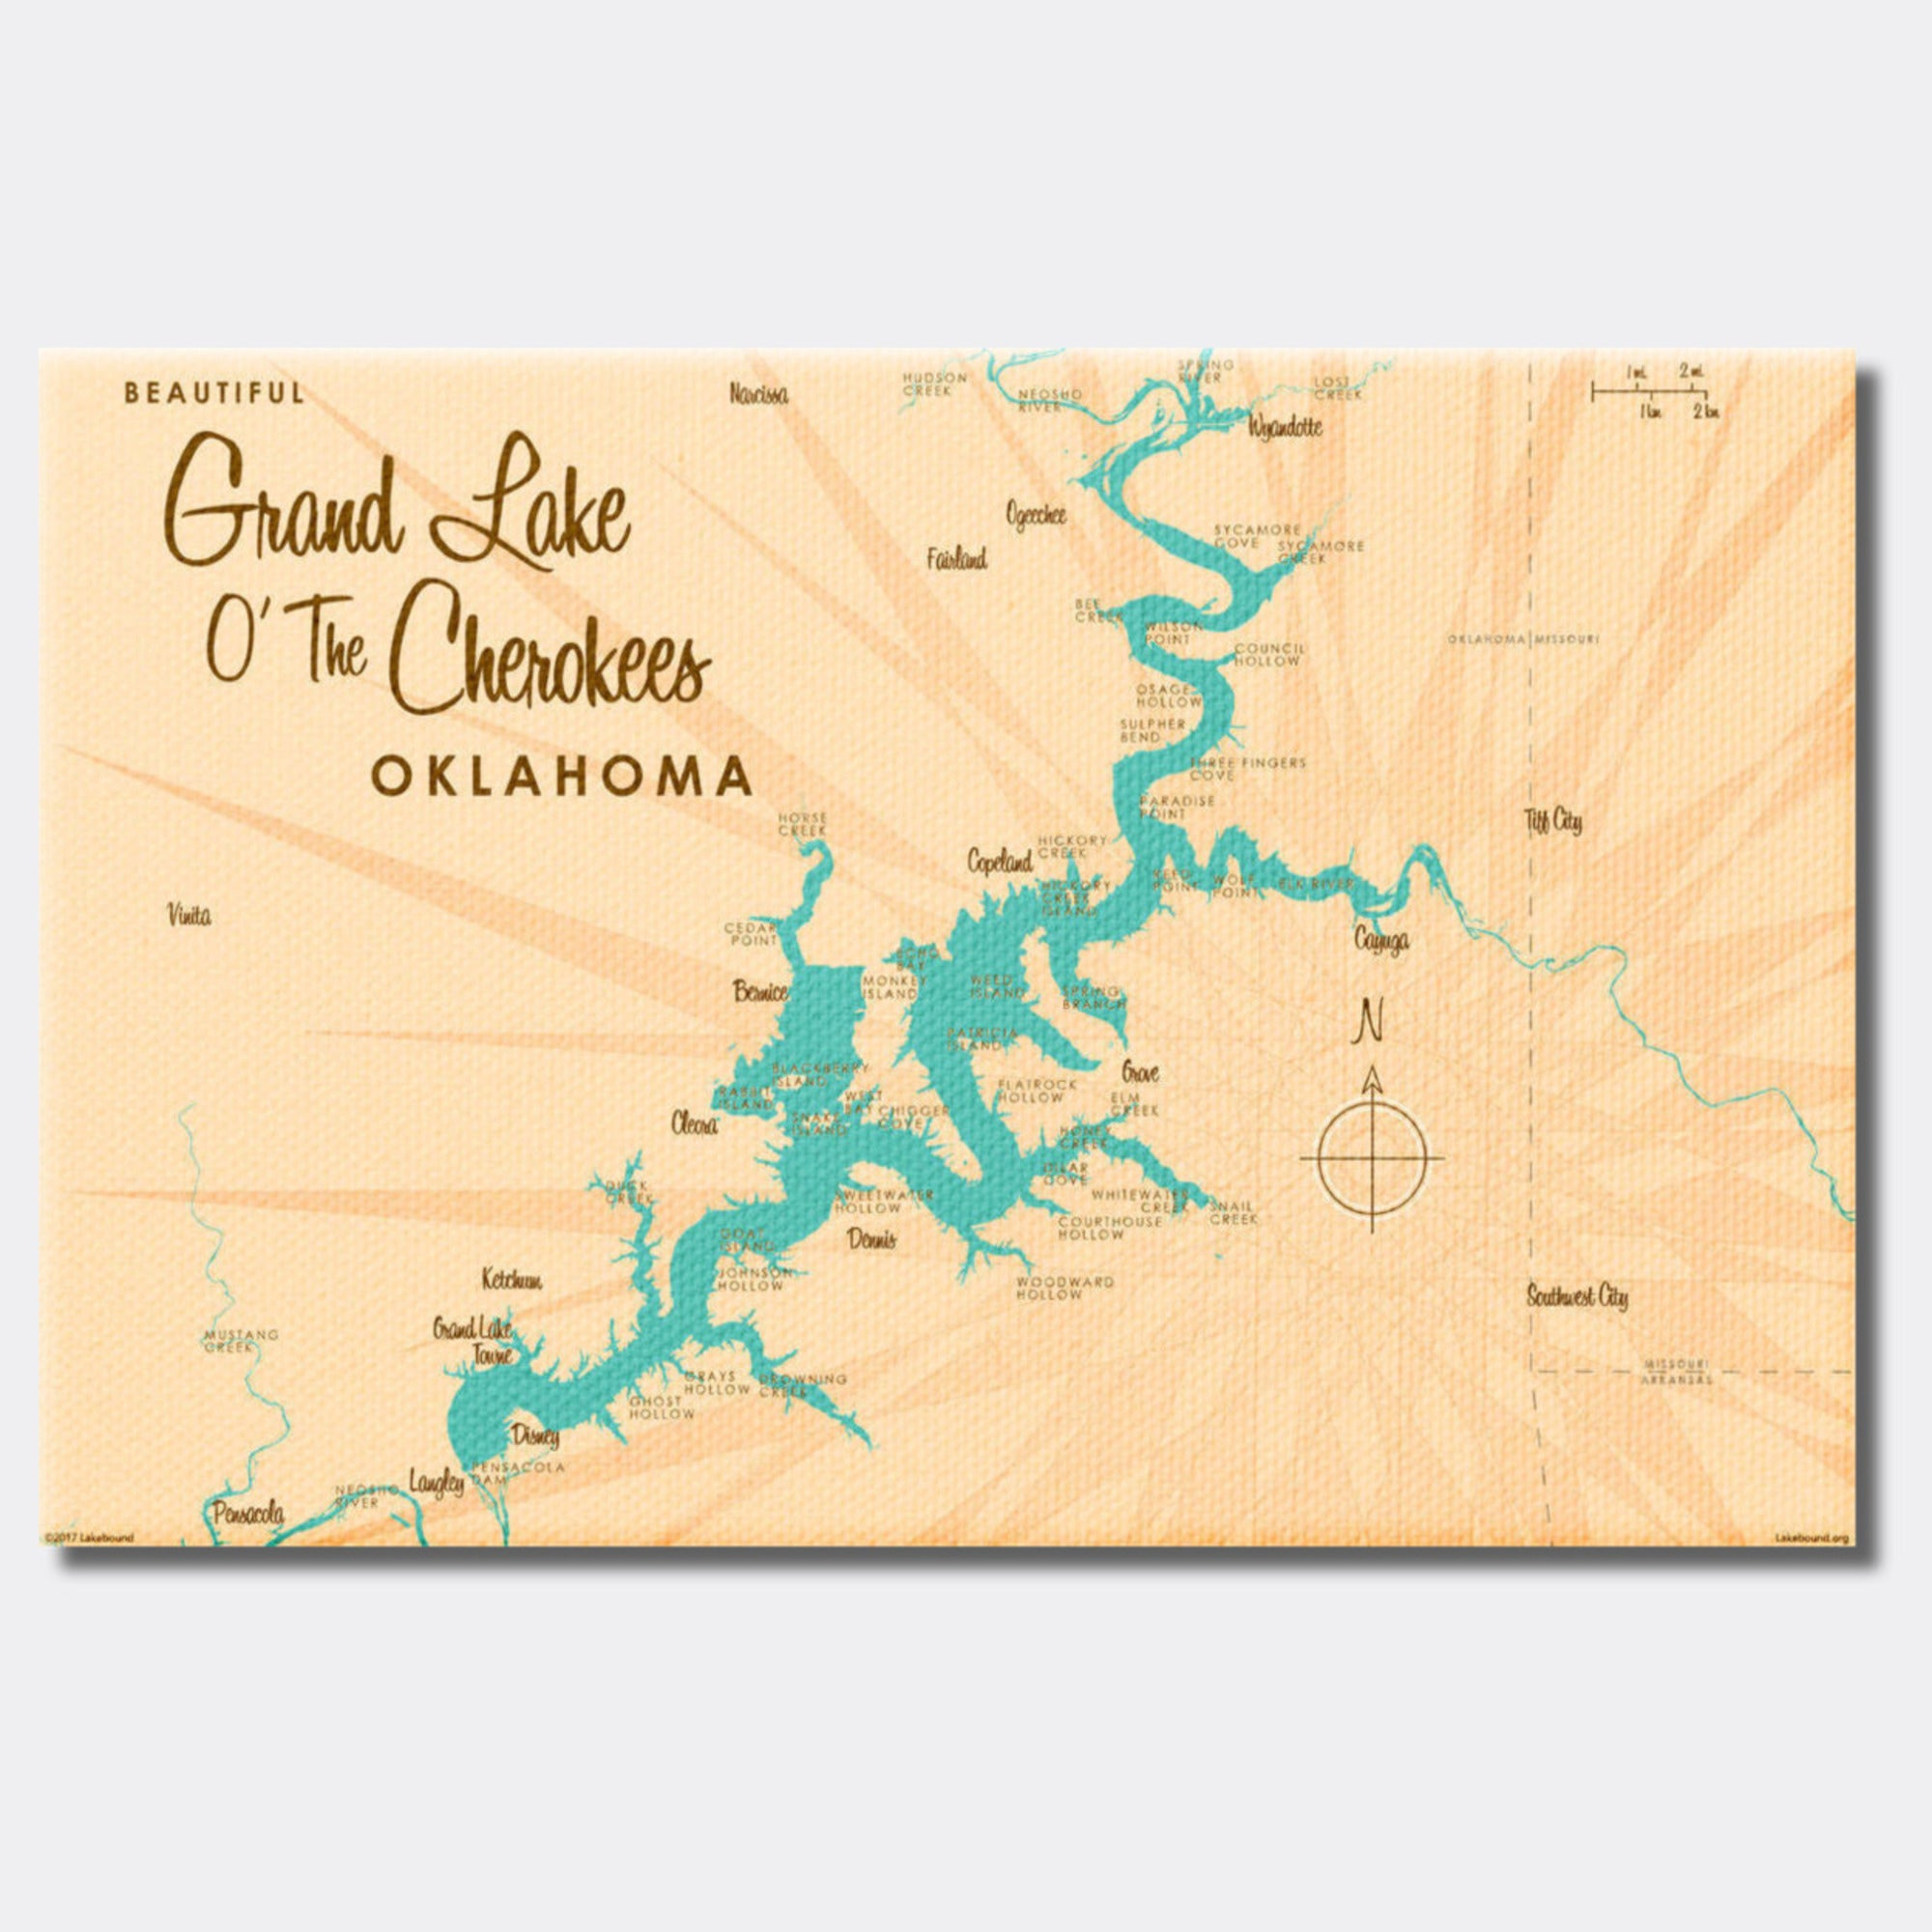 Grand Lake O' The Cherokees Oklahoma, Canvas Print